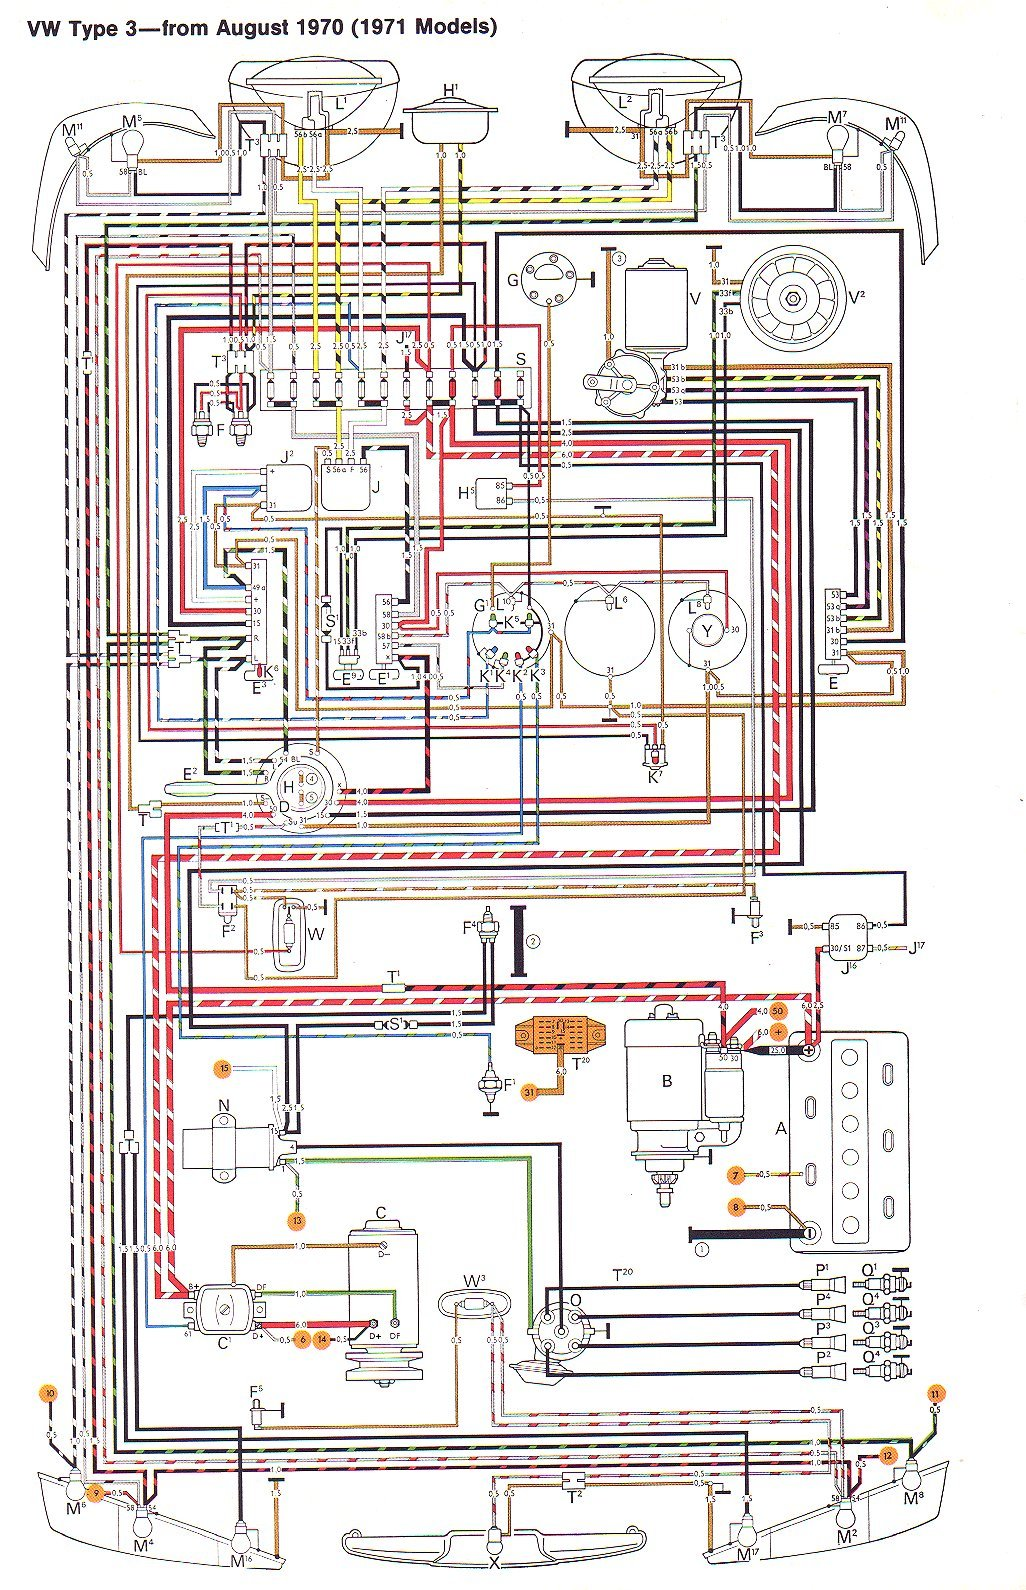 vw type 3 wiring diagrams rh hallvw clara net VW Bug Wiring-Diagram VW Wiring Harness Diagram